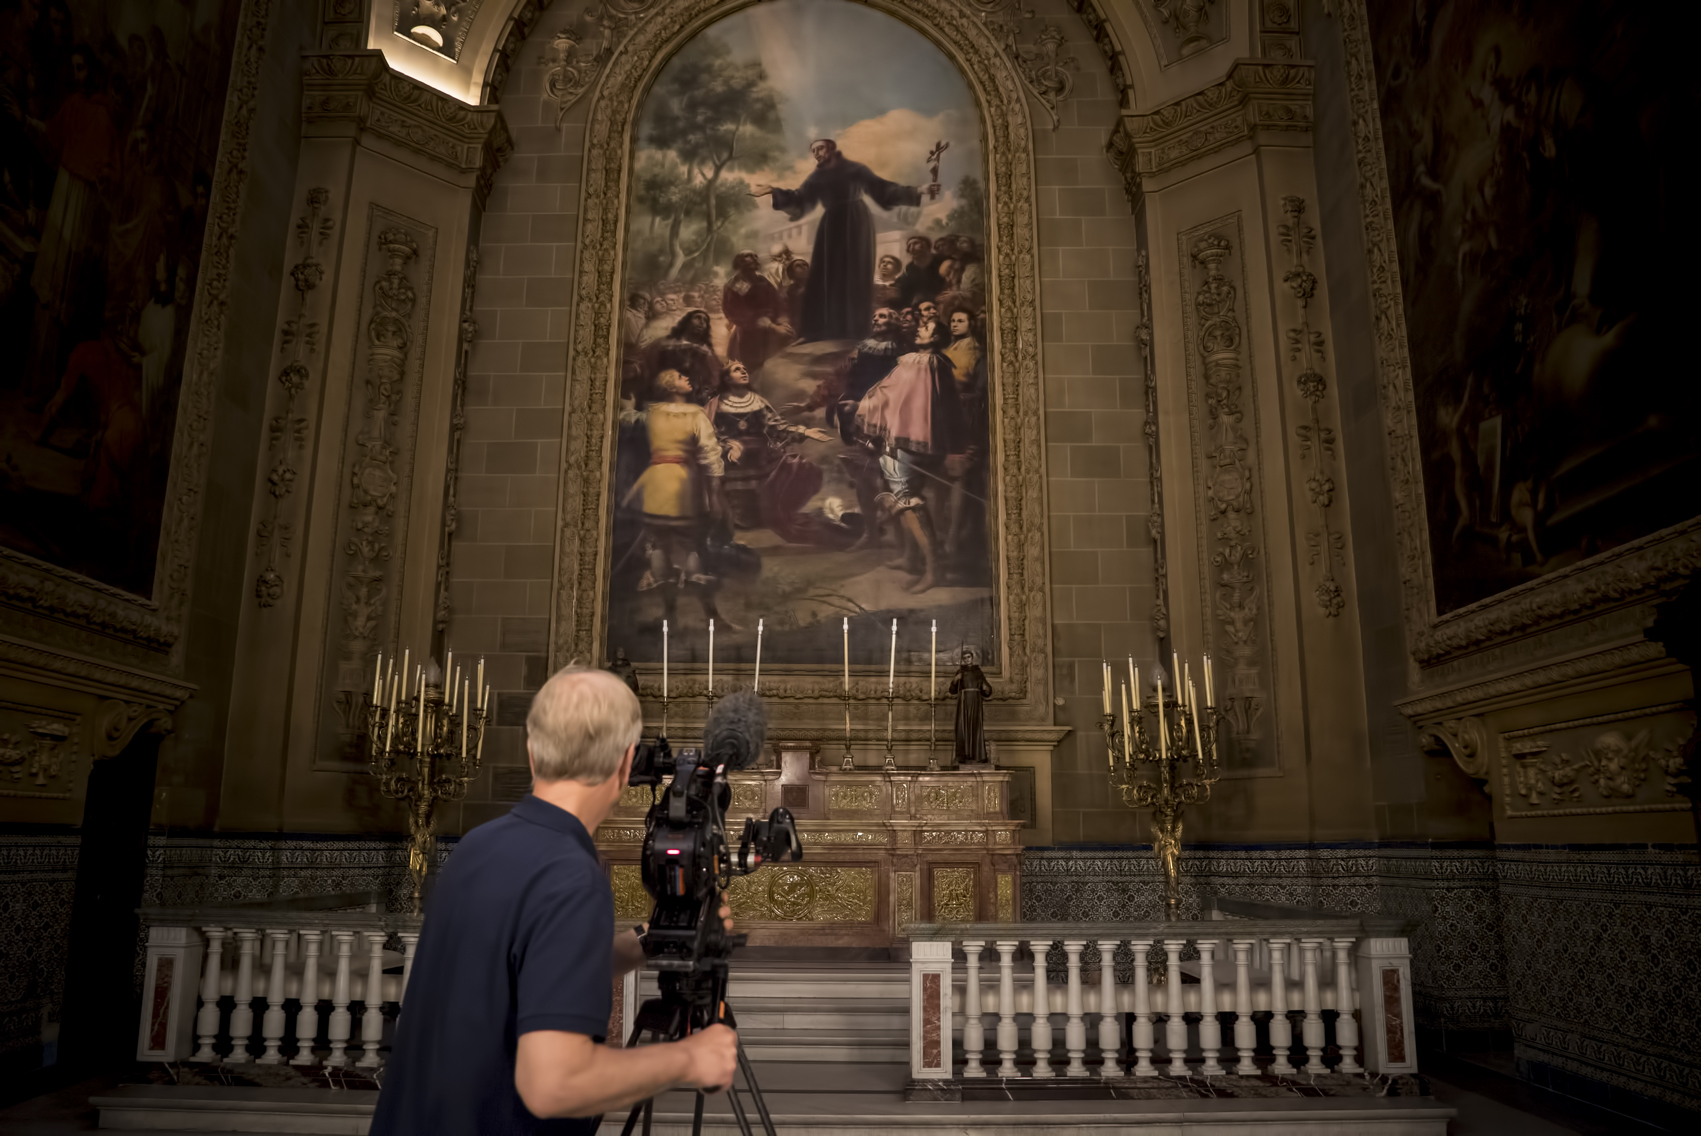 Rodando en la Basílica de San Francisco el Grande de Madrid. Productions David Bickerstaff.